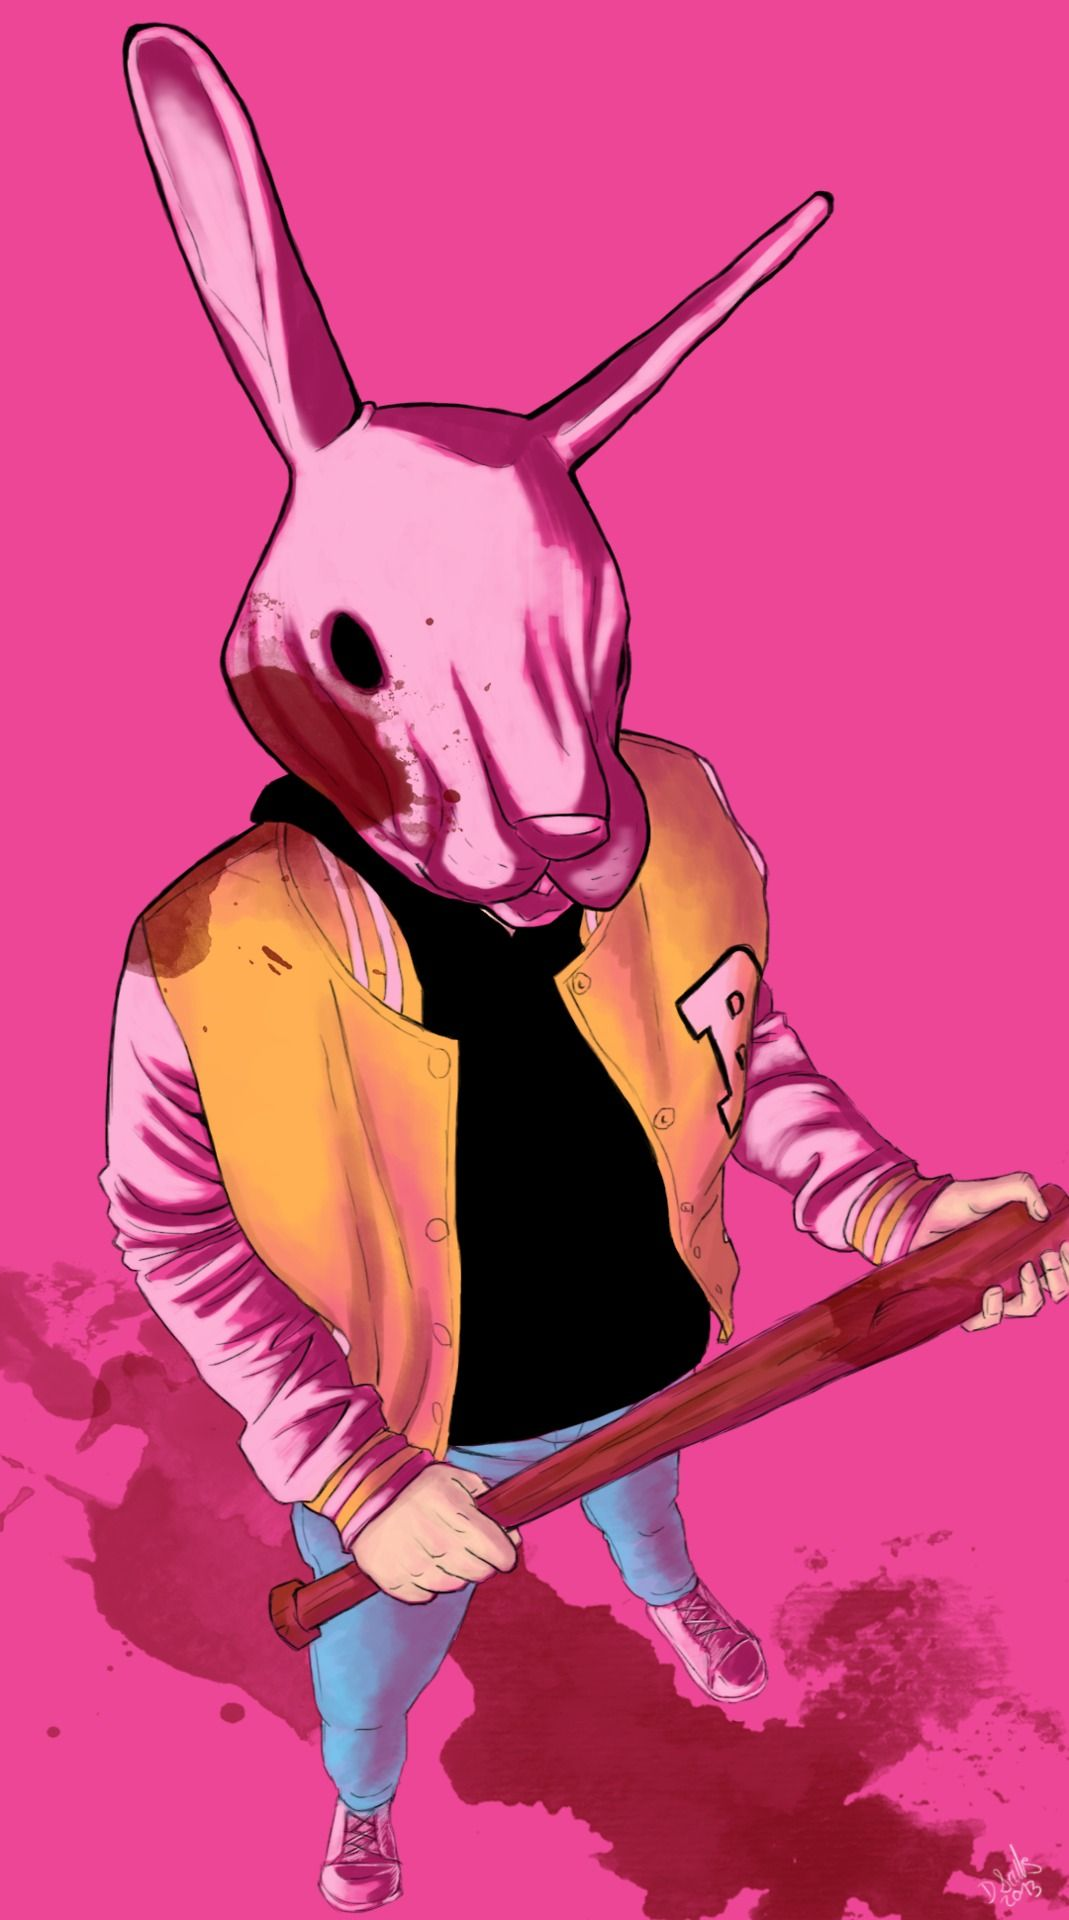 hotline miami i ve always thought this game looked super weird